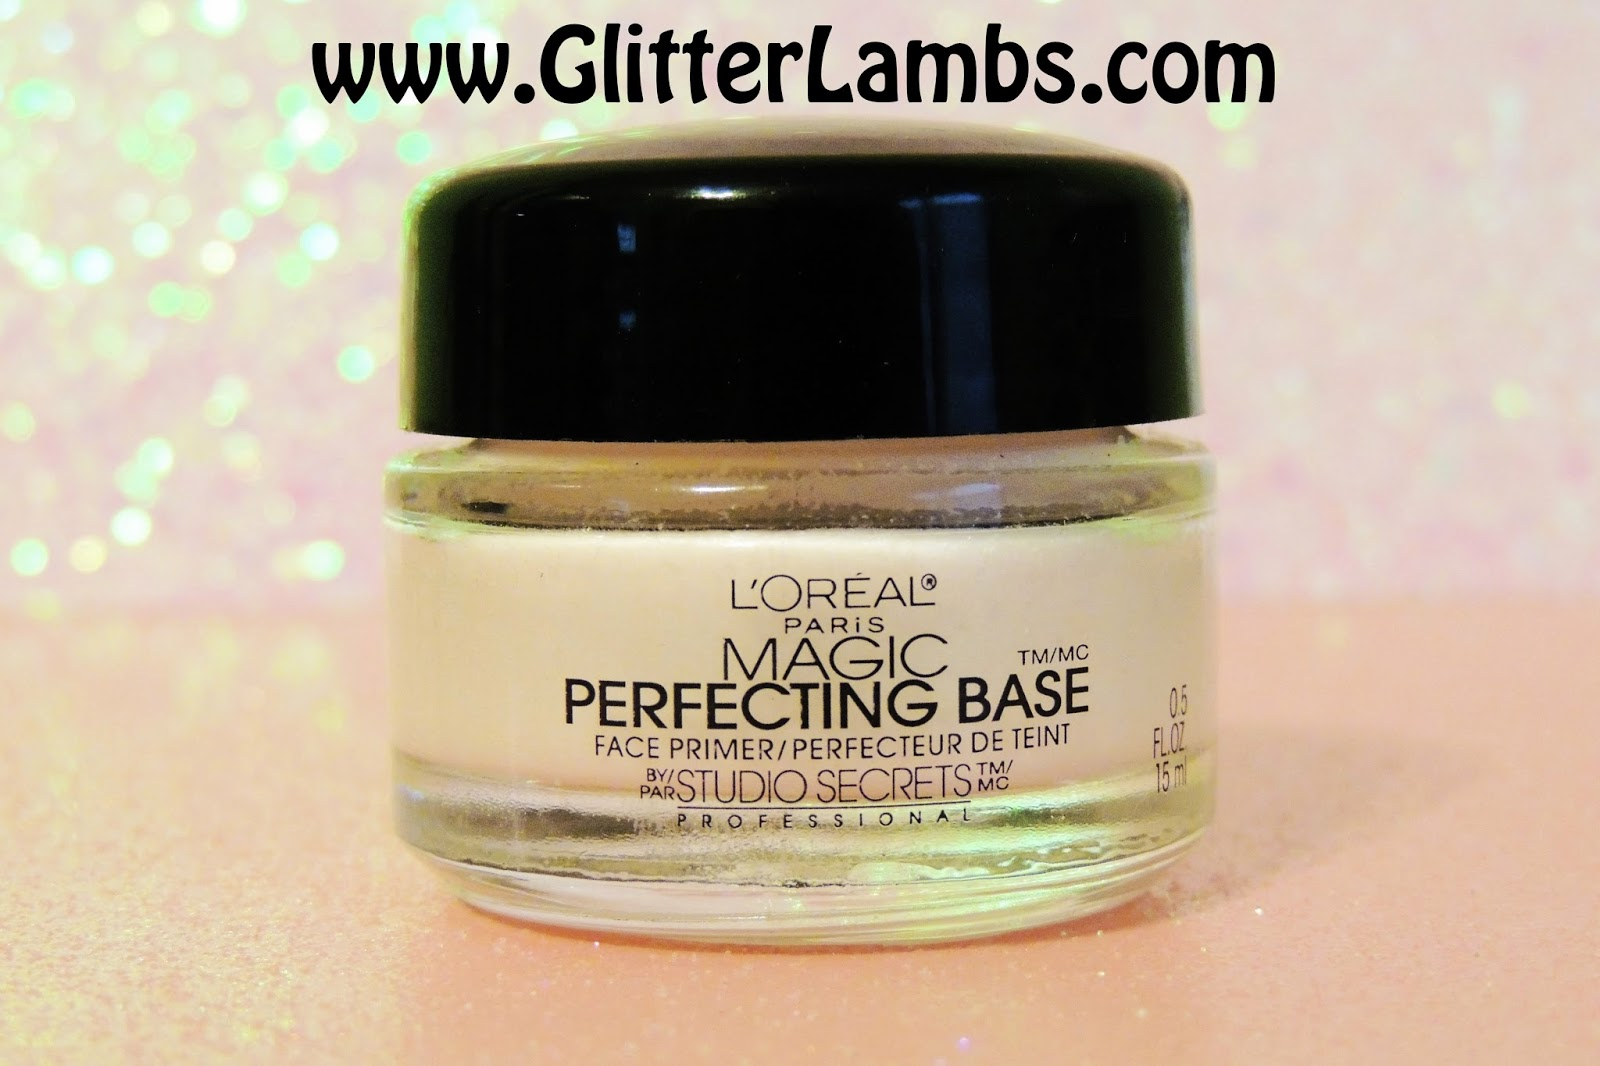 L'Oreal Studio Secrets Professional  Magic Perfecting Base Face Primer Review  By Glitter Lambs